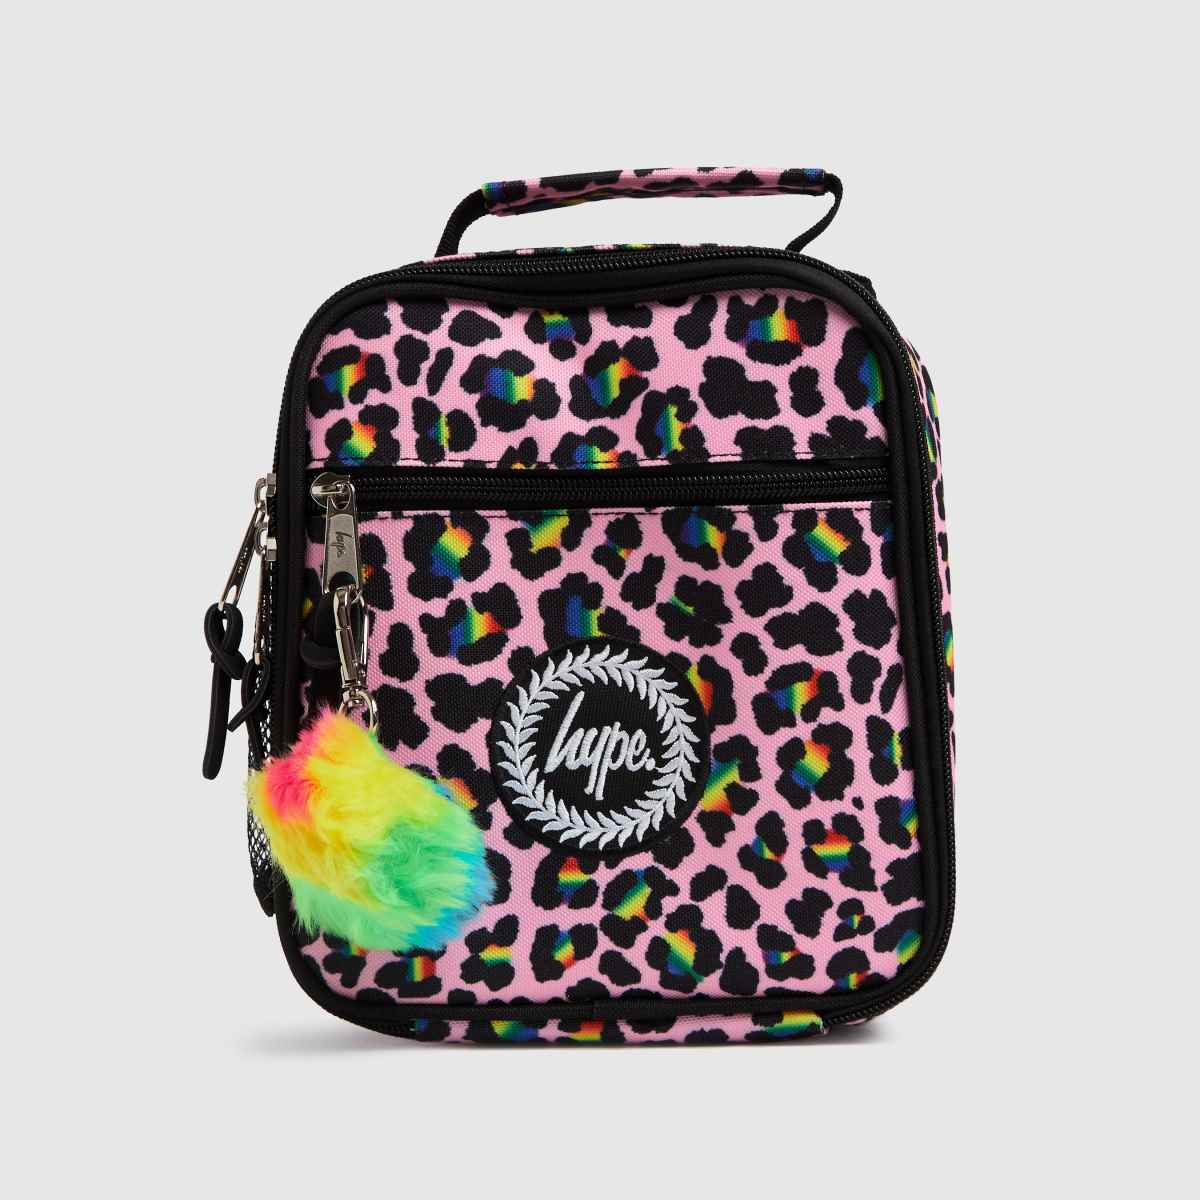 Hype Pink & Black Disco Leopard Luch Bag